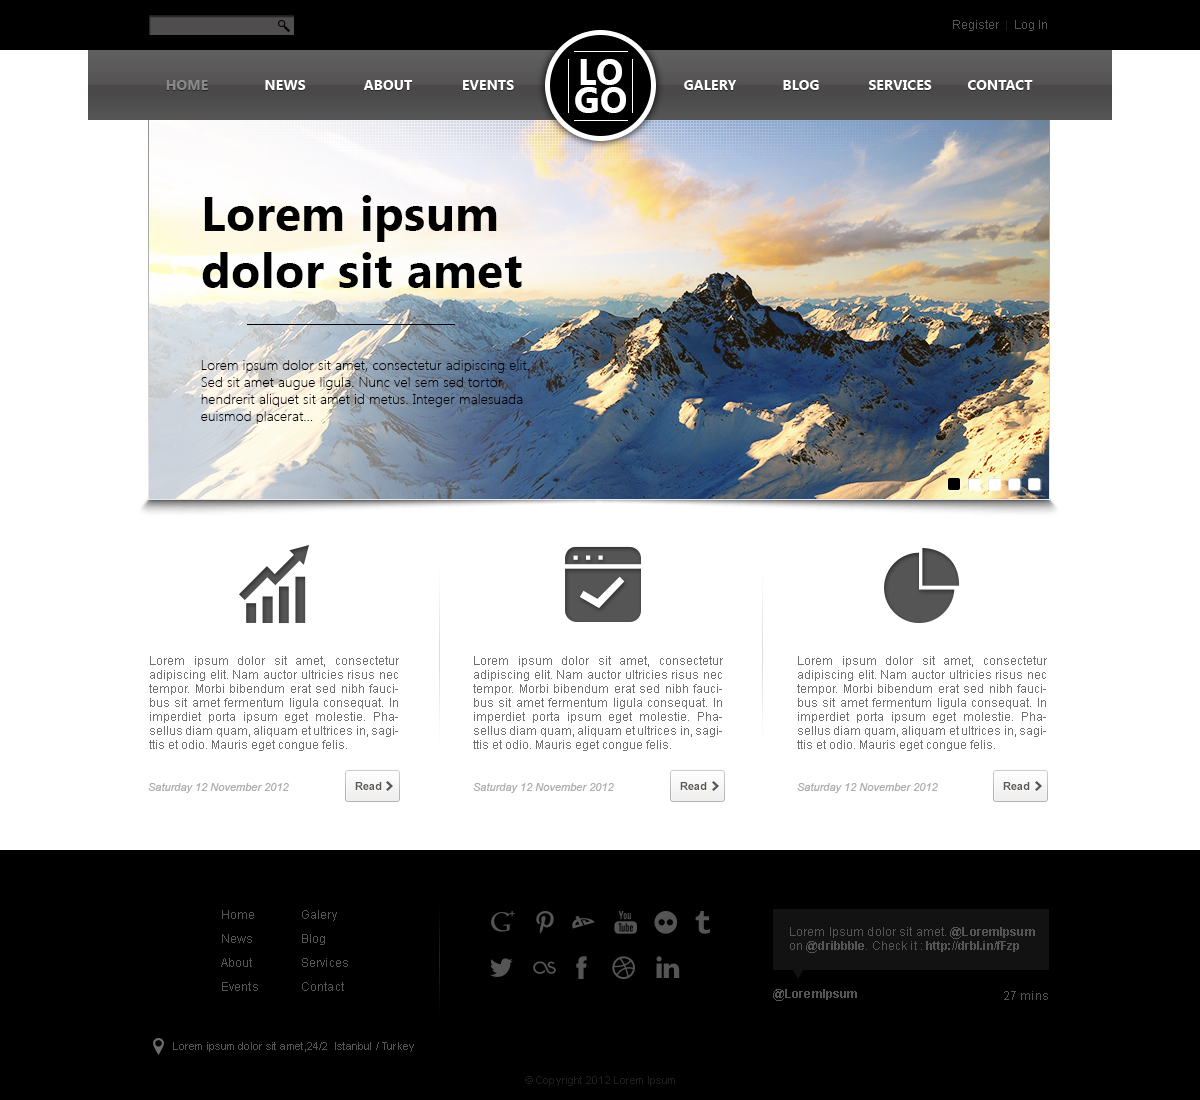 Ausgezeichnet Raster Website Vorlage Fotos - Entry Level Resume ...